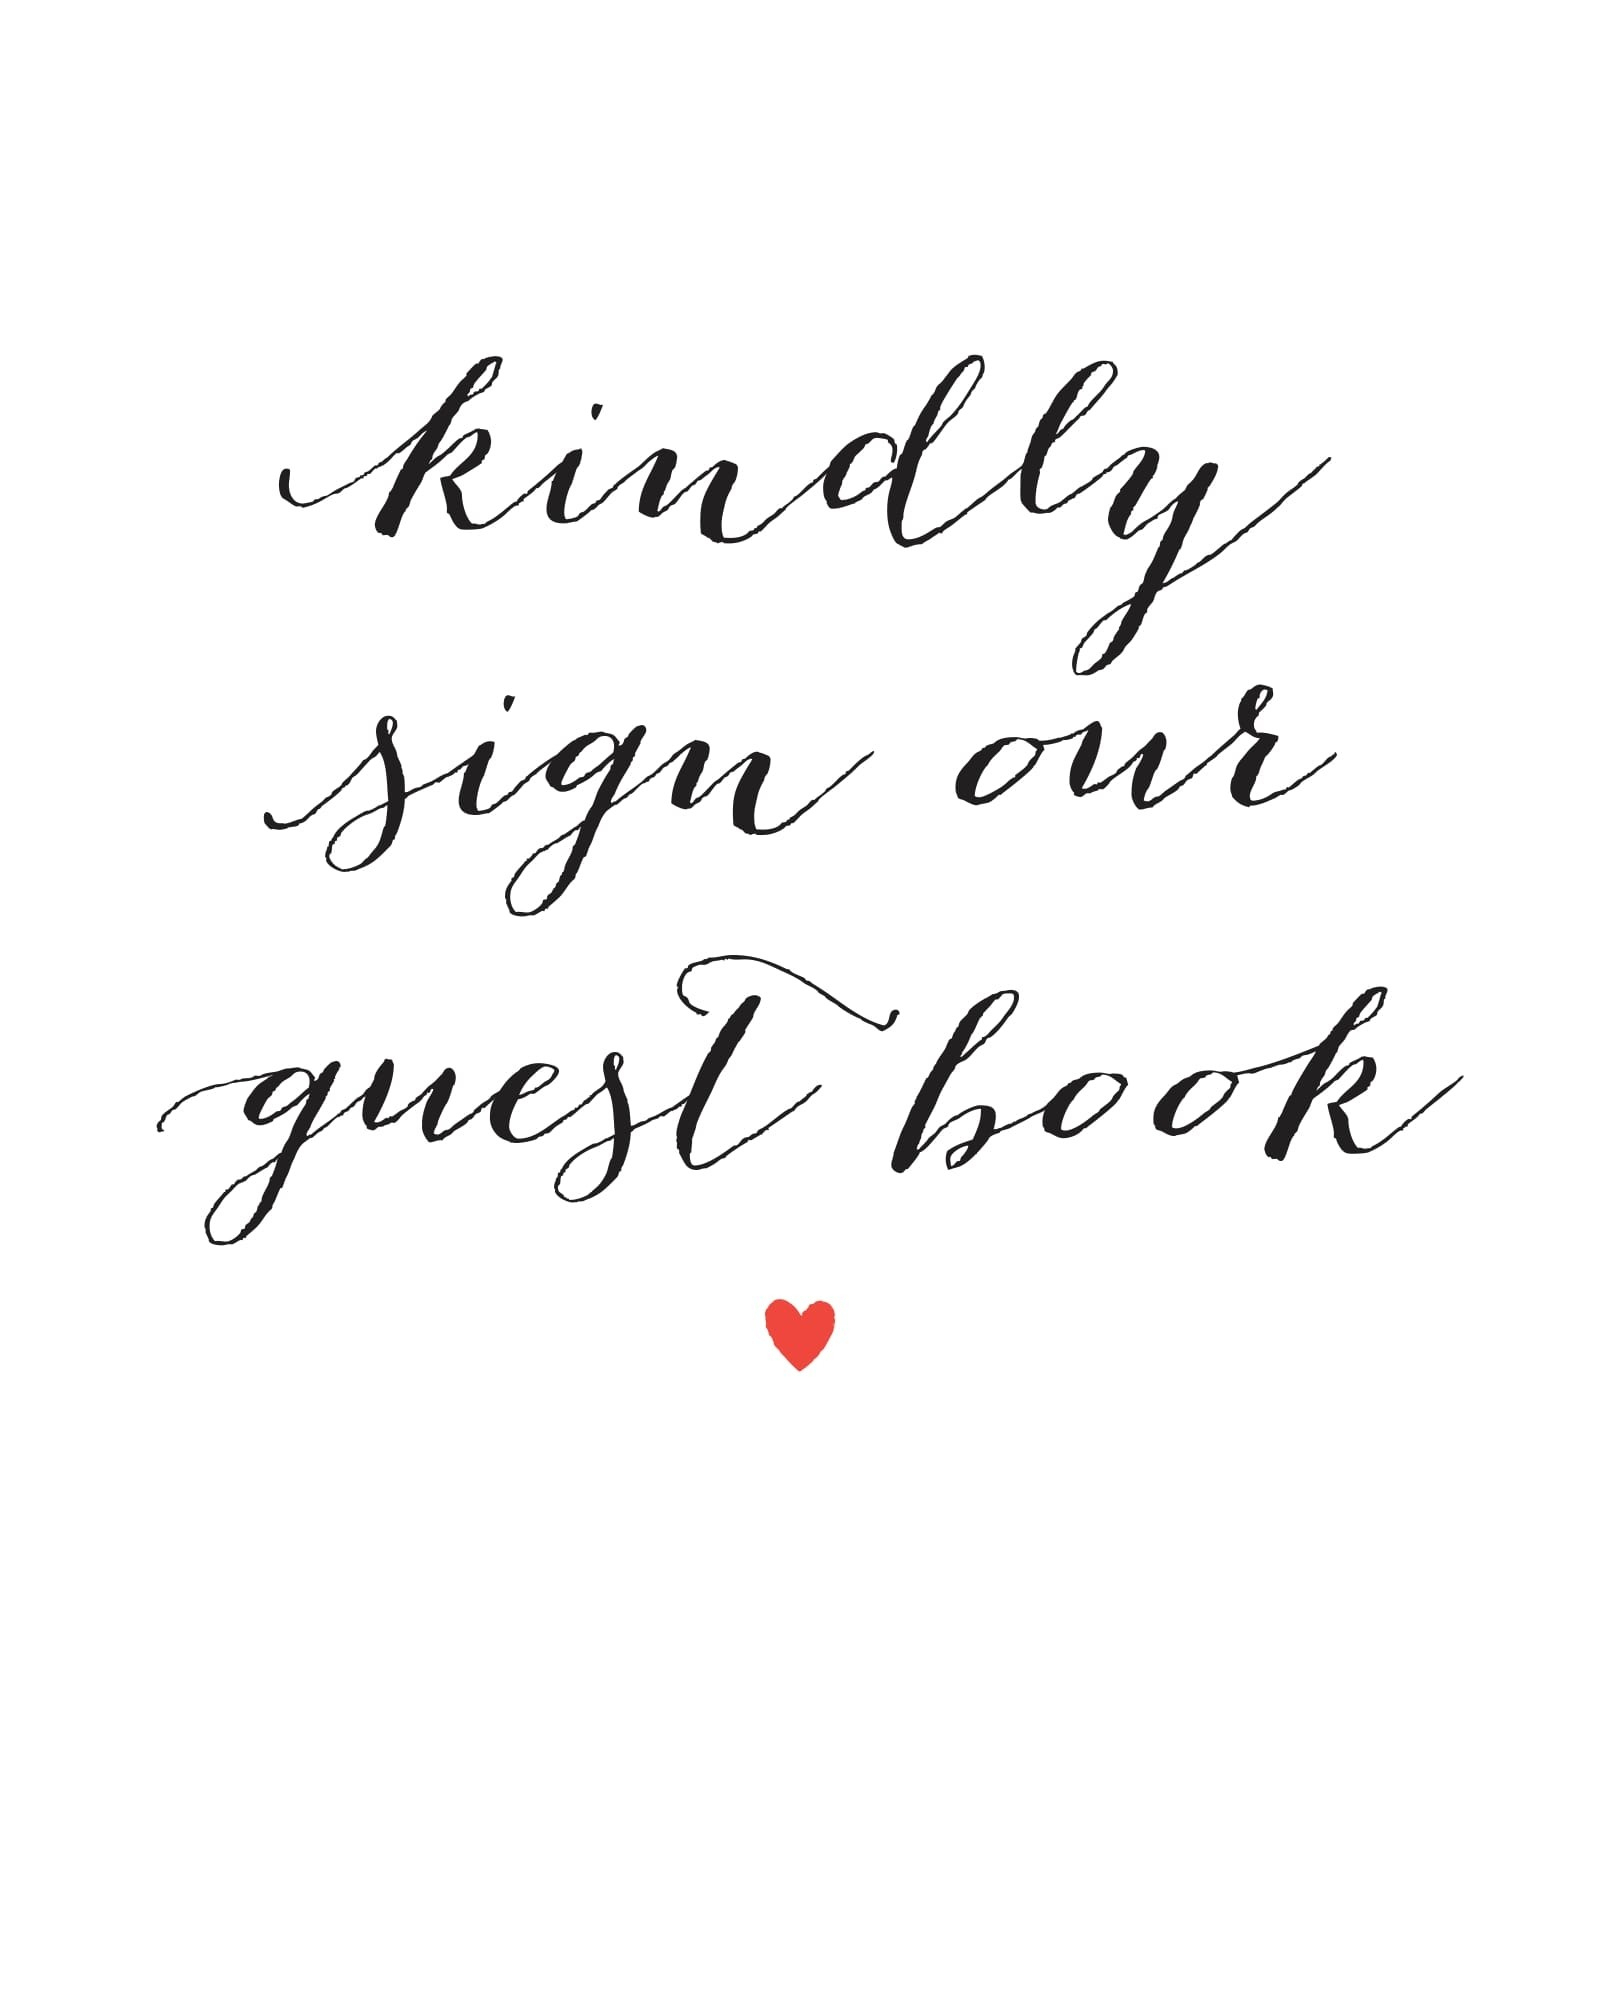 Wedding Signs Printables And Diy Templates Of Signs - Free Printable Wedding Signs